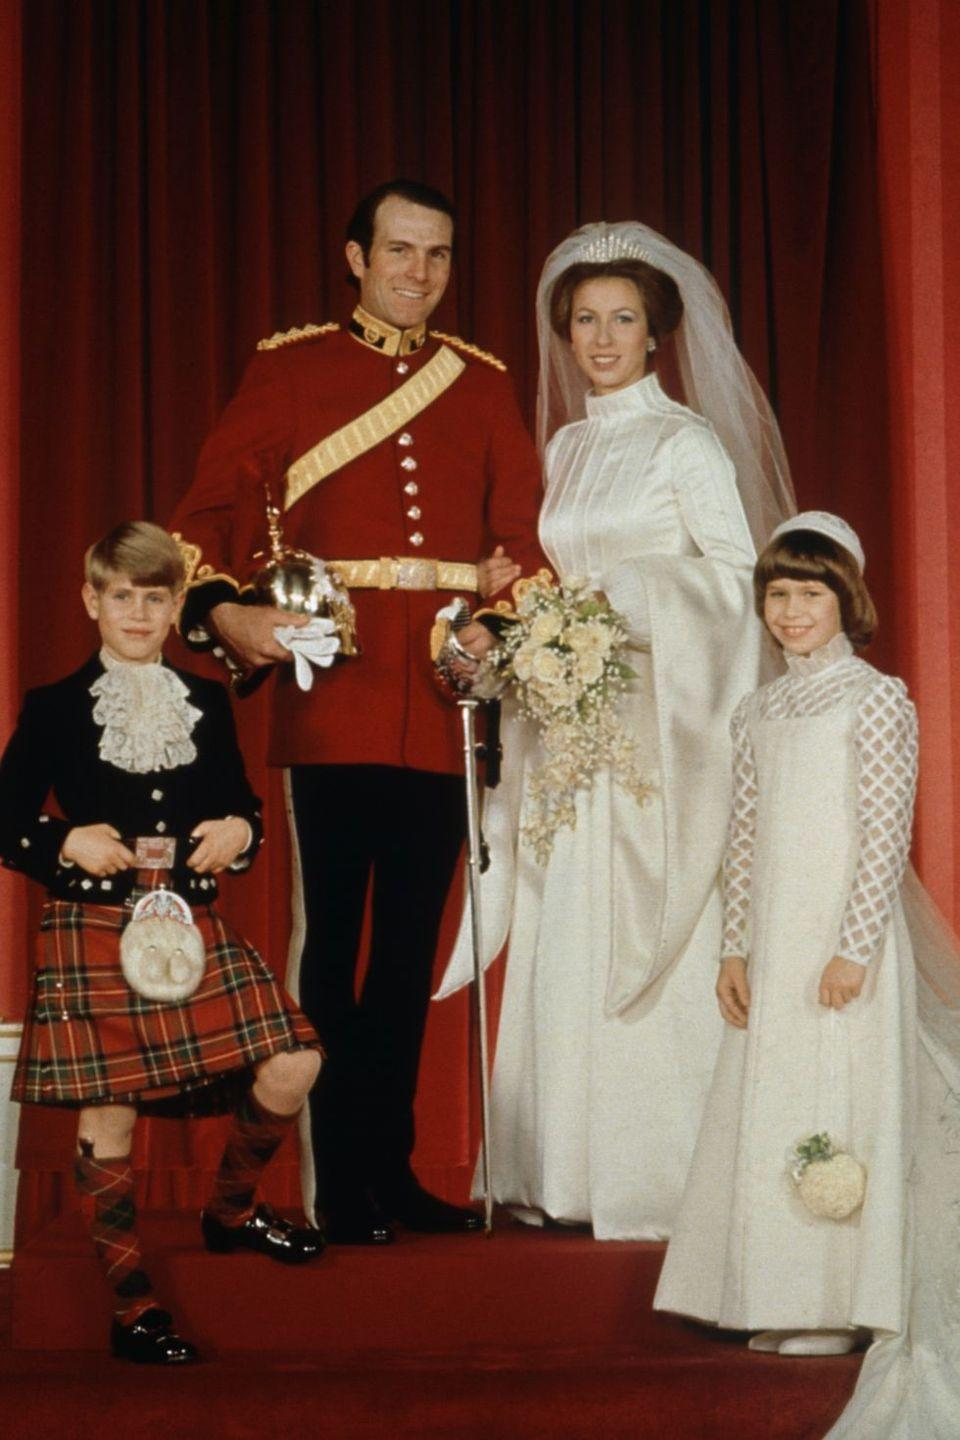 "<p><strong>Wedding date: </strong>November 14, 1973</p><p><strong>Wedding tiara: </strong><a href=""https://www.townandcountrymag.com/society/tradition/a13075050/princess-anne-queen-elizabeth-daughter-facts/"" rel=""nofollow noopener"" target=""_blank"" data-ylk=""slk:Queen Elizabeth's only daughter"" class=""link rapid-noclick-resp"">Queen Elizabeth's only daughter</a> chose a particularly meaningful tiara for her wedding to Mark Phillips: Queen Mary's Russian Fringe tiara, which the Queen also wore on her wedding day. <a href=""http://orderofsplendor.blogspot.com/2011/03/tiara-thursday-queen-marys-fringe-tiara.html"" rel=""nofollow noopener"" target=""_blank"" data-ylk=""slk:The tiara contains"" class=""link rapid-noclick-resp"">The tiara contains</a> 47 diamond bars along with smaller diamond spikes and was made by Garrard.</p>"